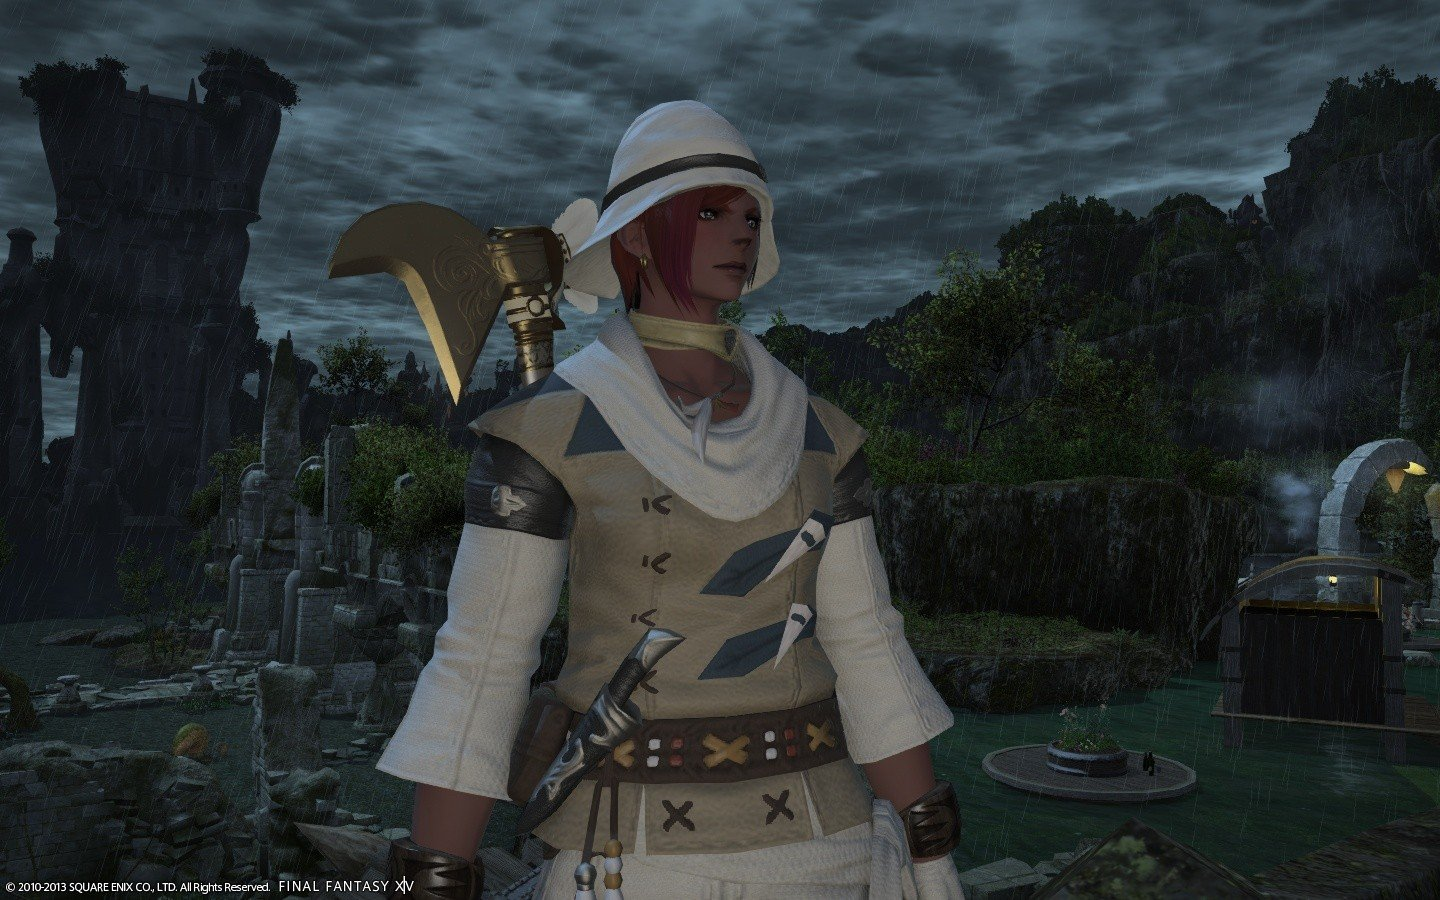 Final Fantasy XIV: Heavensward - All Powerful Botanist